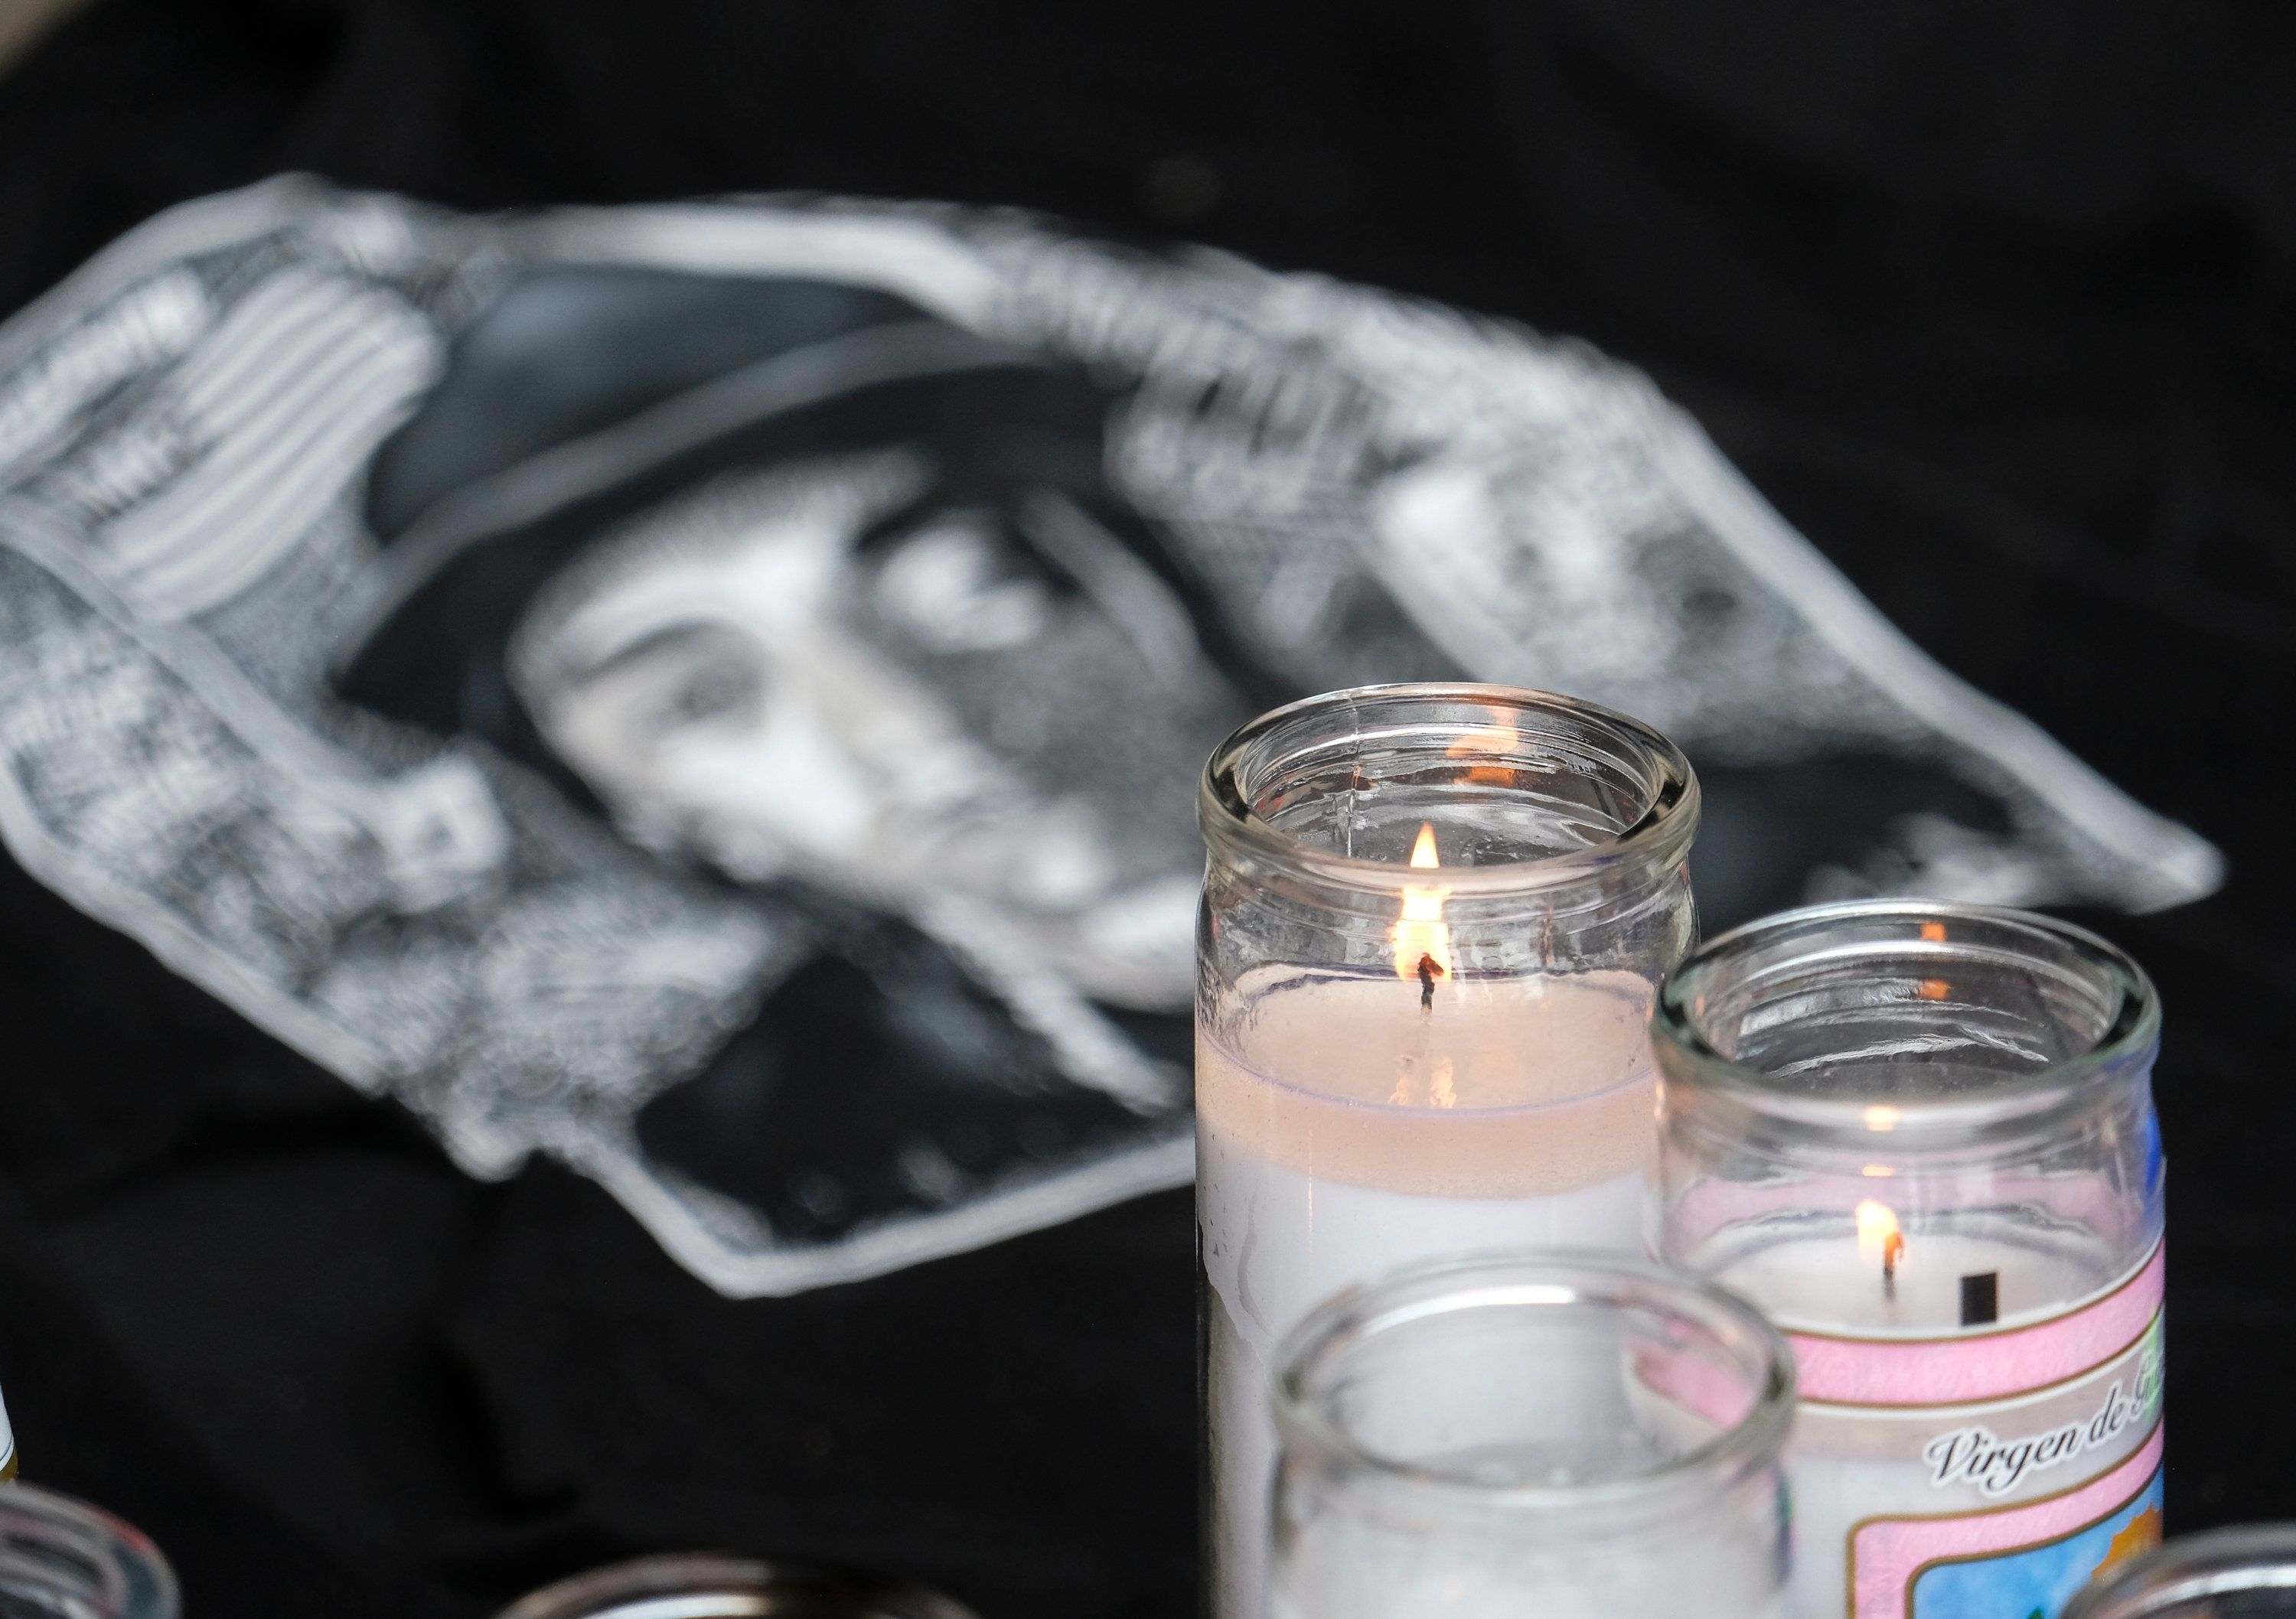 Candles appear at a makeshift memorial for rapper Nipsey Hussle in the parking lot of his Marathon Clothing store in Los Angeles, Monday, April 1, 2019. Hussle was killed in a shooting outside the store on Sunday. (AP Photo/Ringo H.W. Chiu)